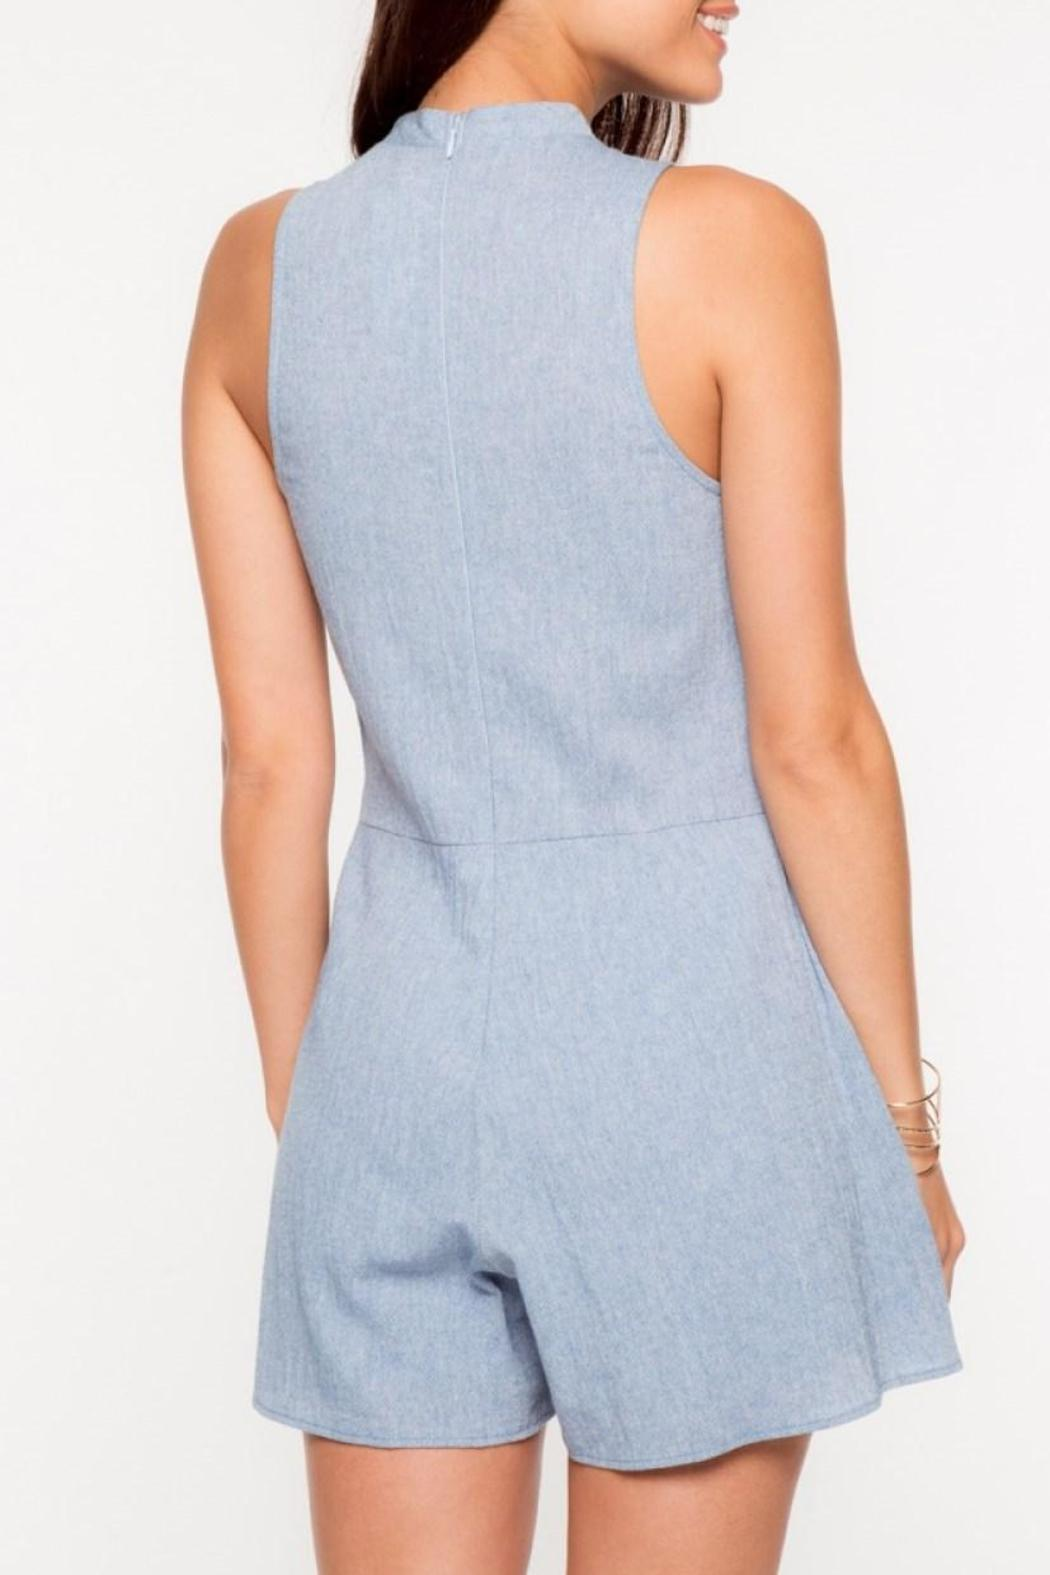 Everly Blue Kaity Romper - Front Full Image